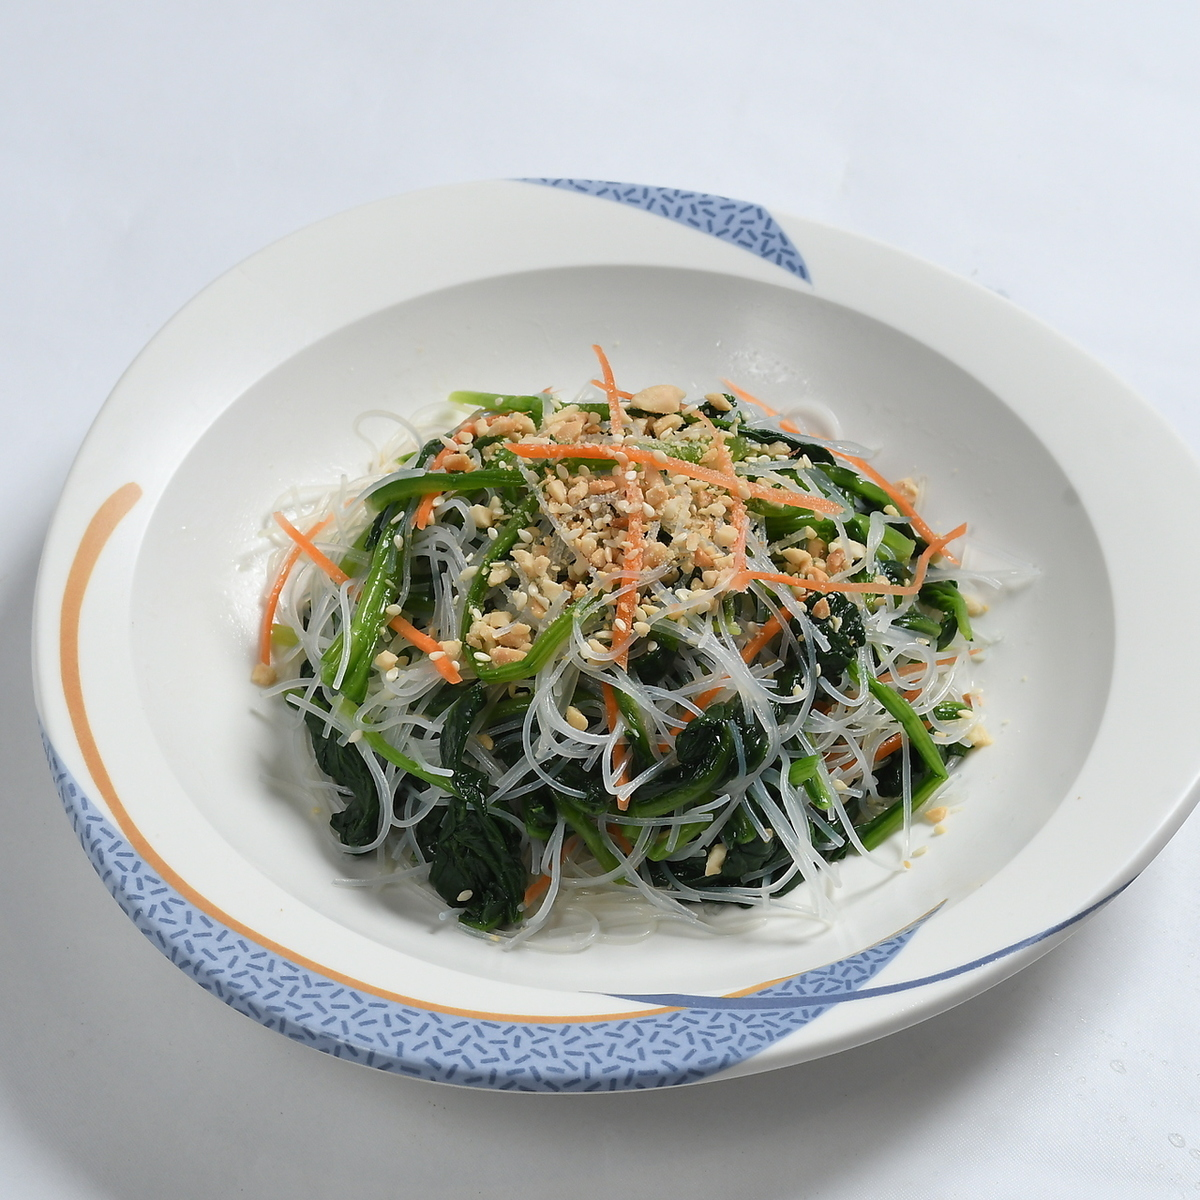 Spinach and savory rice